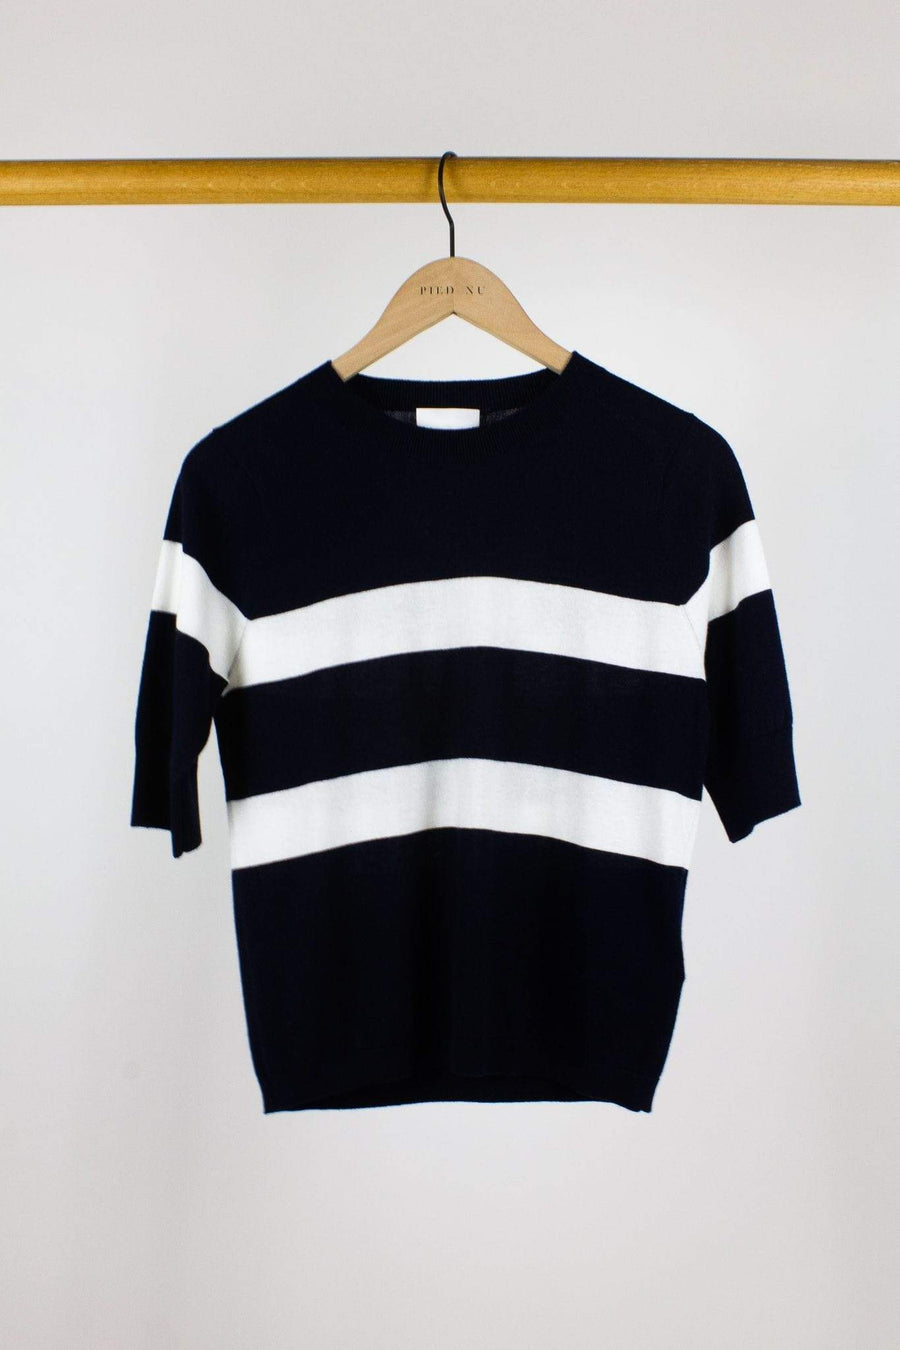 Allude Tops Allude <br> Crewneck Sweater <br> Short Sleeves